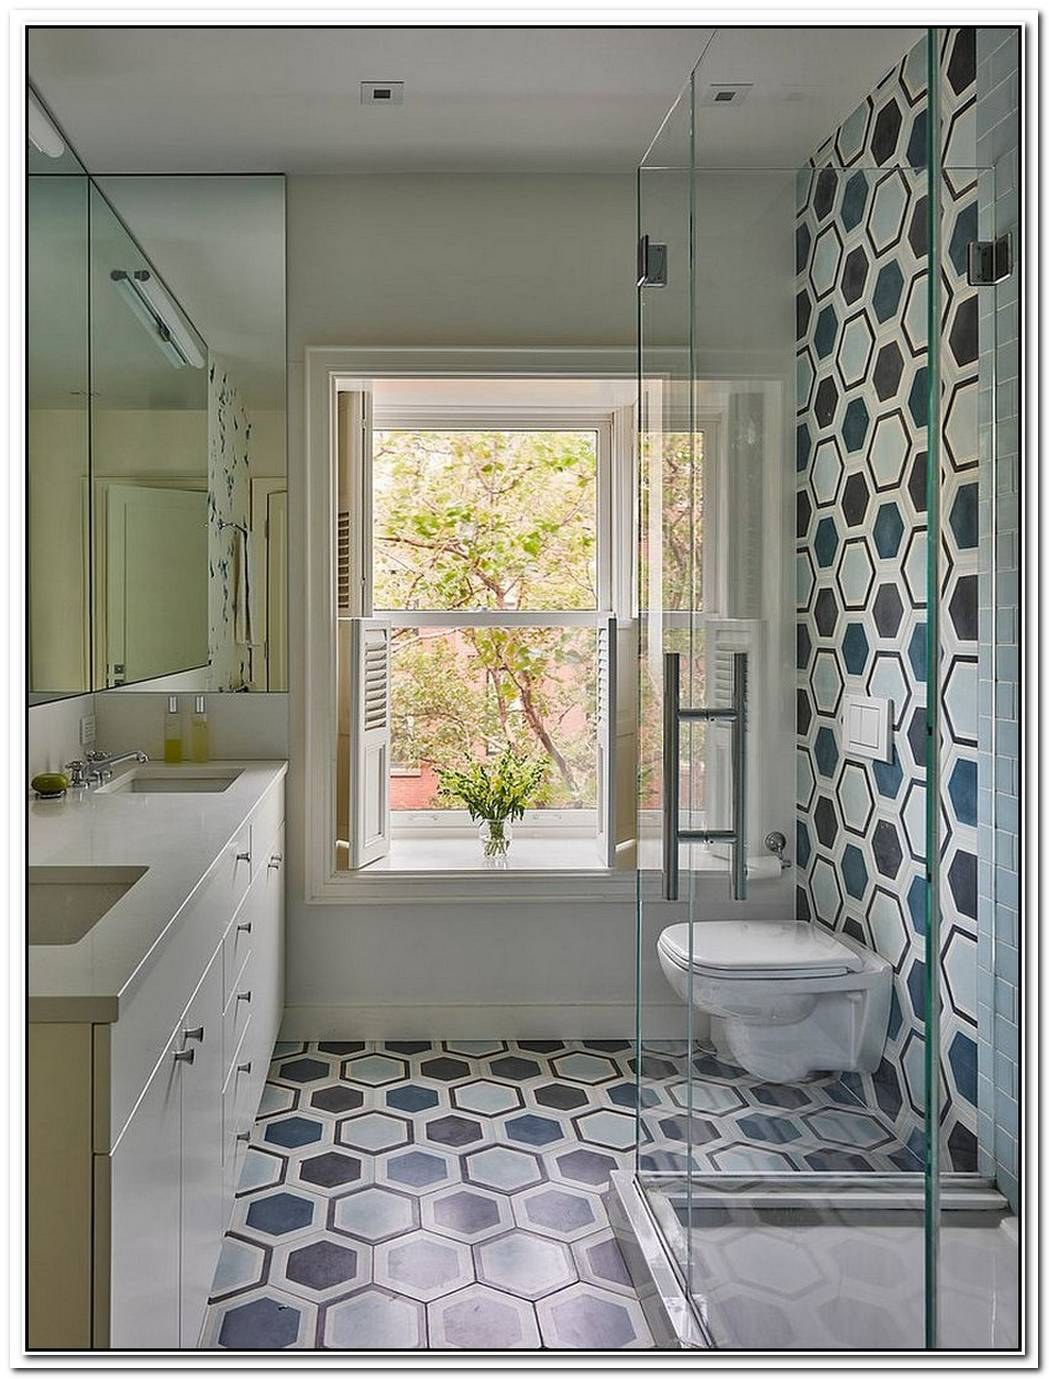 Tiles To StylesSmart Bathroom Decorating Trends With A Difference